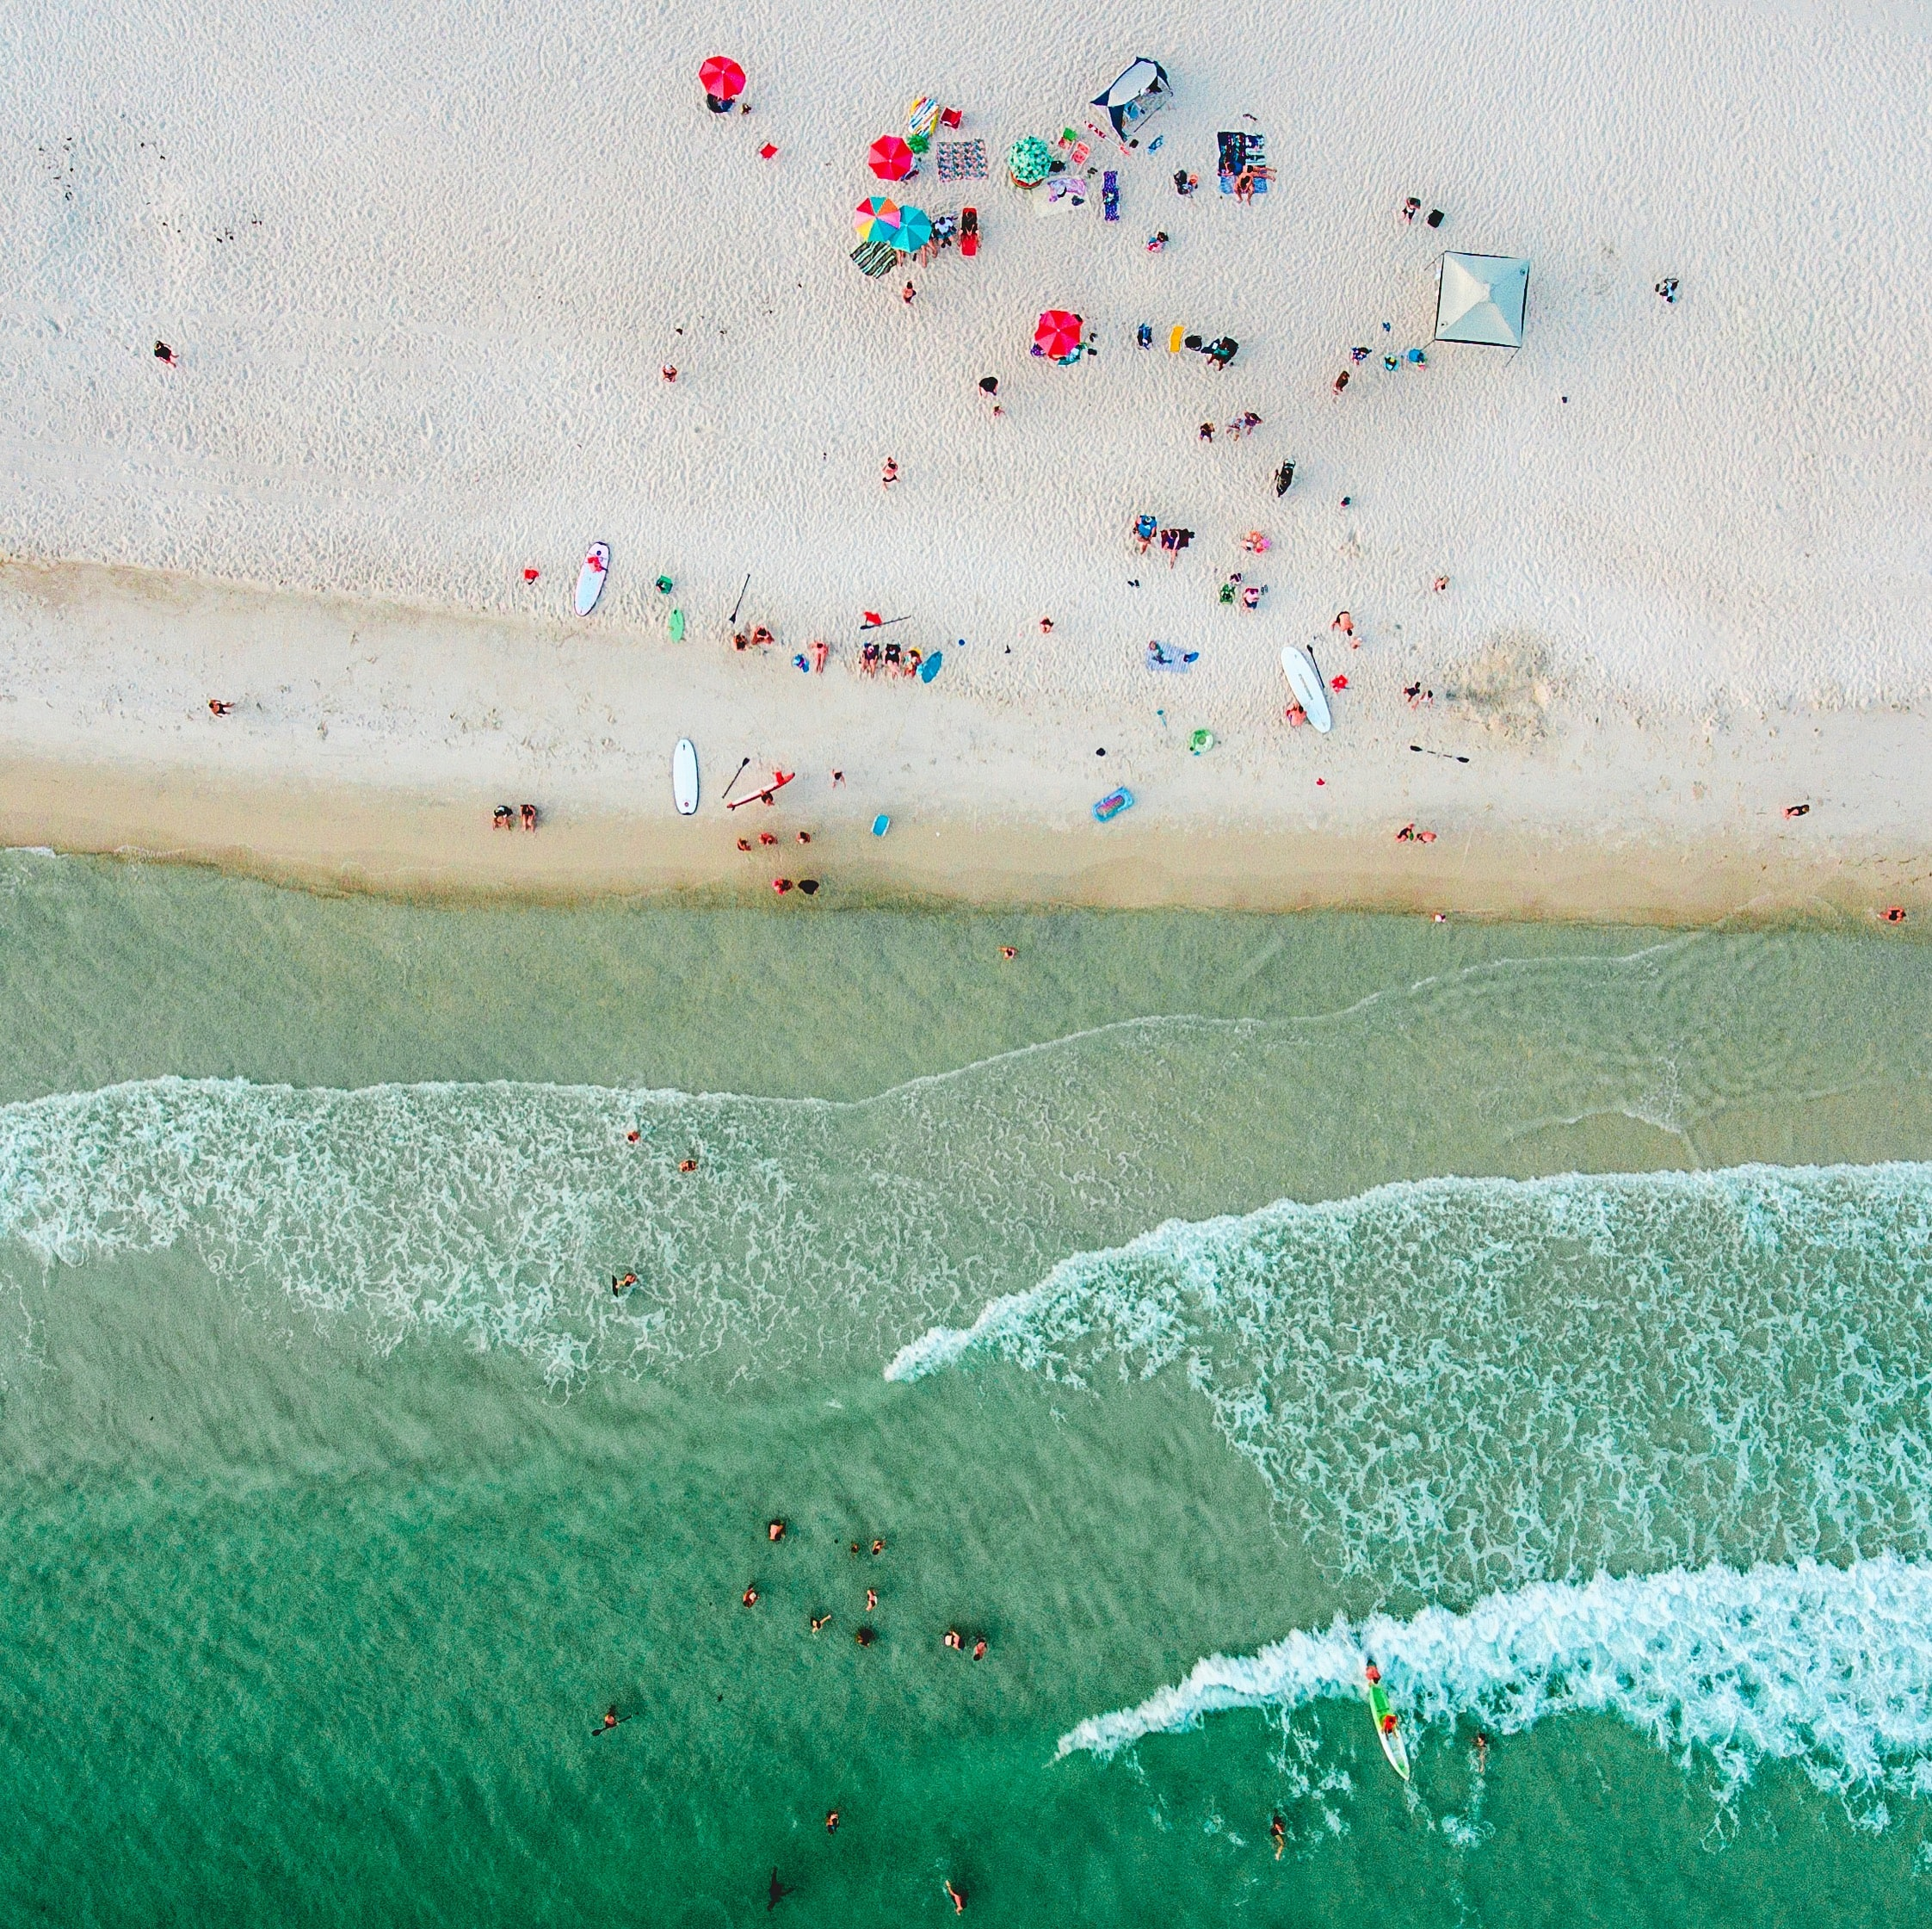 aerial photo of people on seashore and sea at daytime